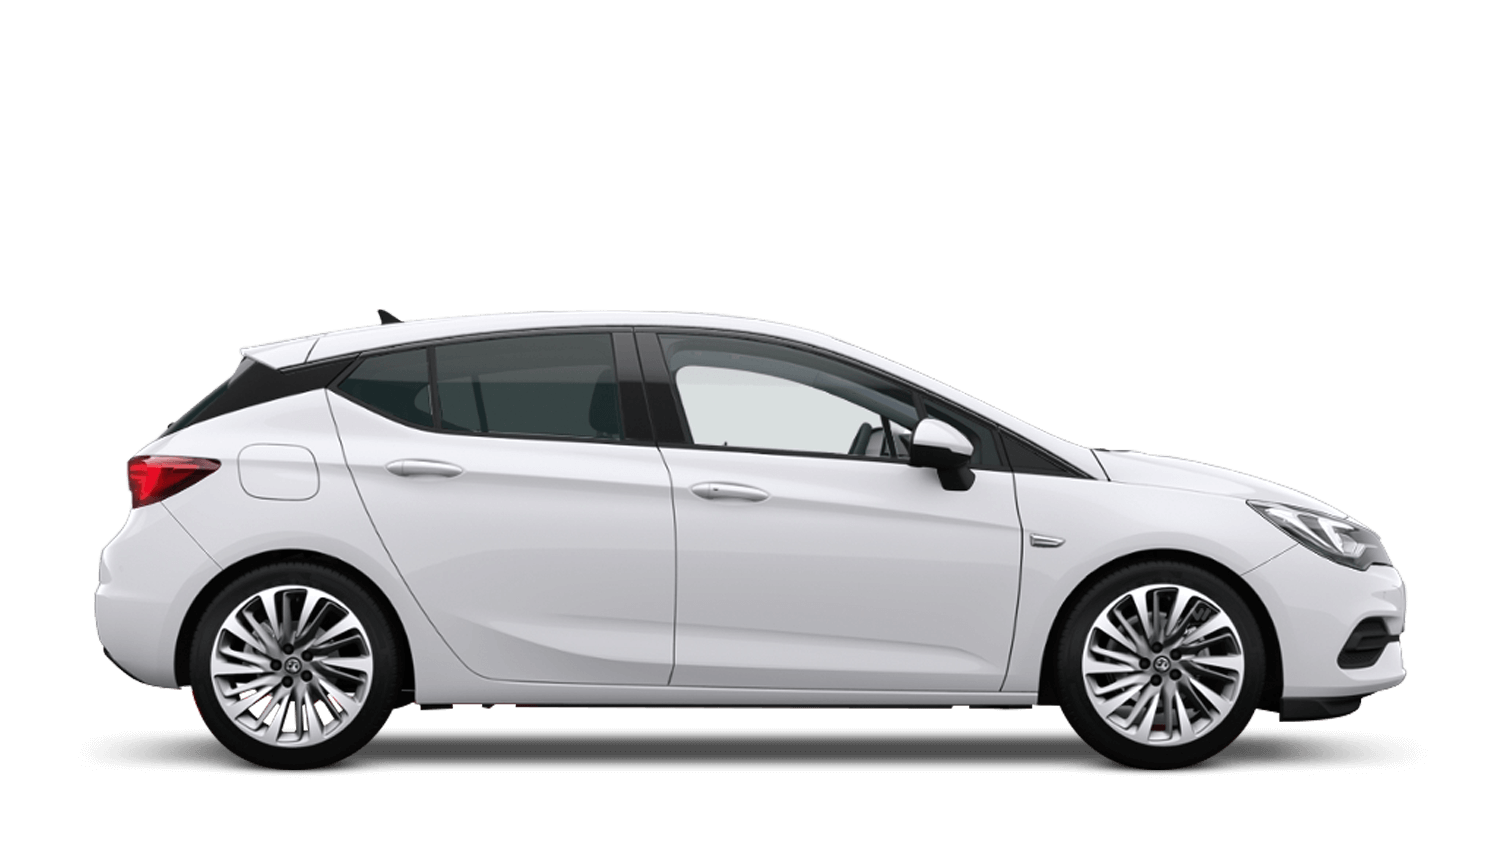 Summit White (Brilliant) New Vauxhall Astra